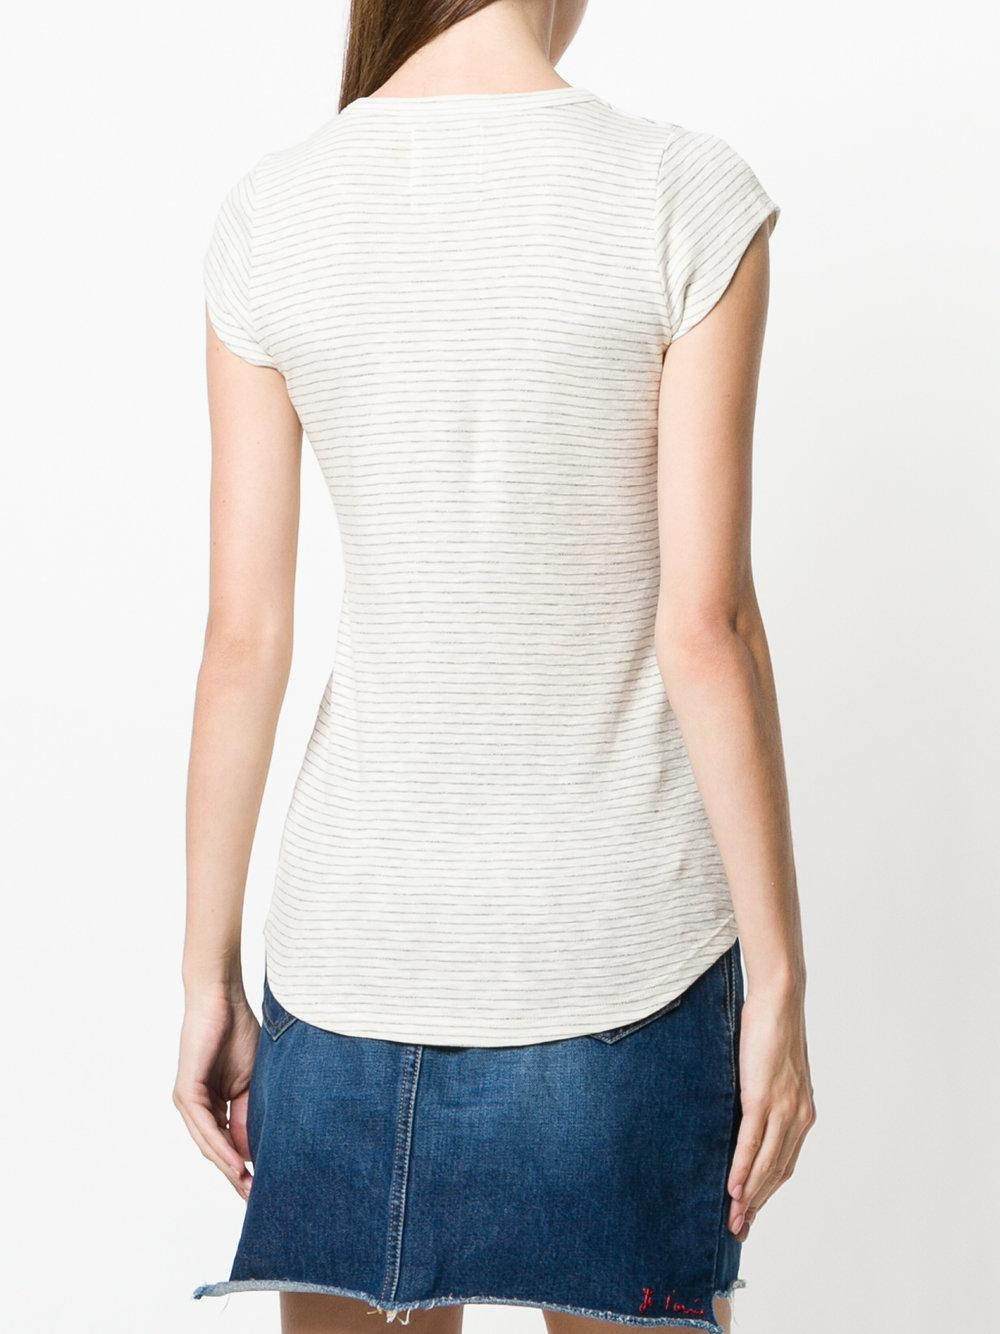 striped T-shirt - Nude & Neutrals Zoe Karssen Amazing Price Cheap Online Prices Sale Online Clearance Outlet Store buX6feUk